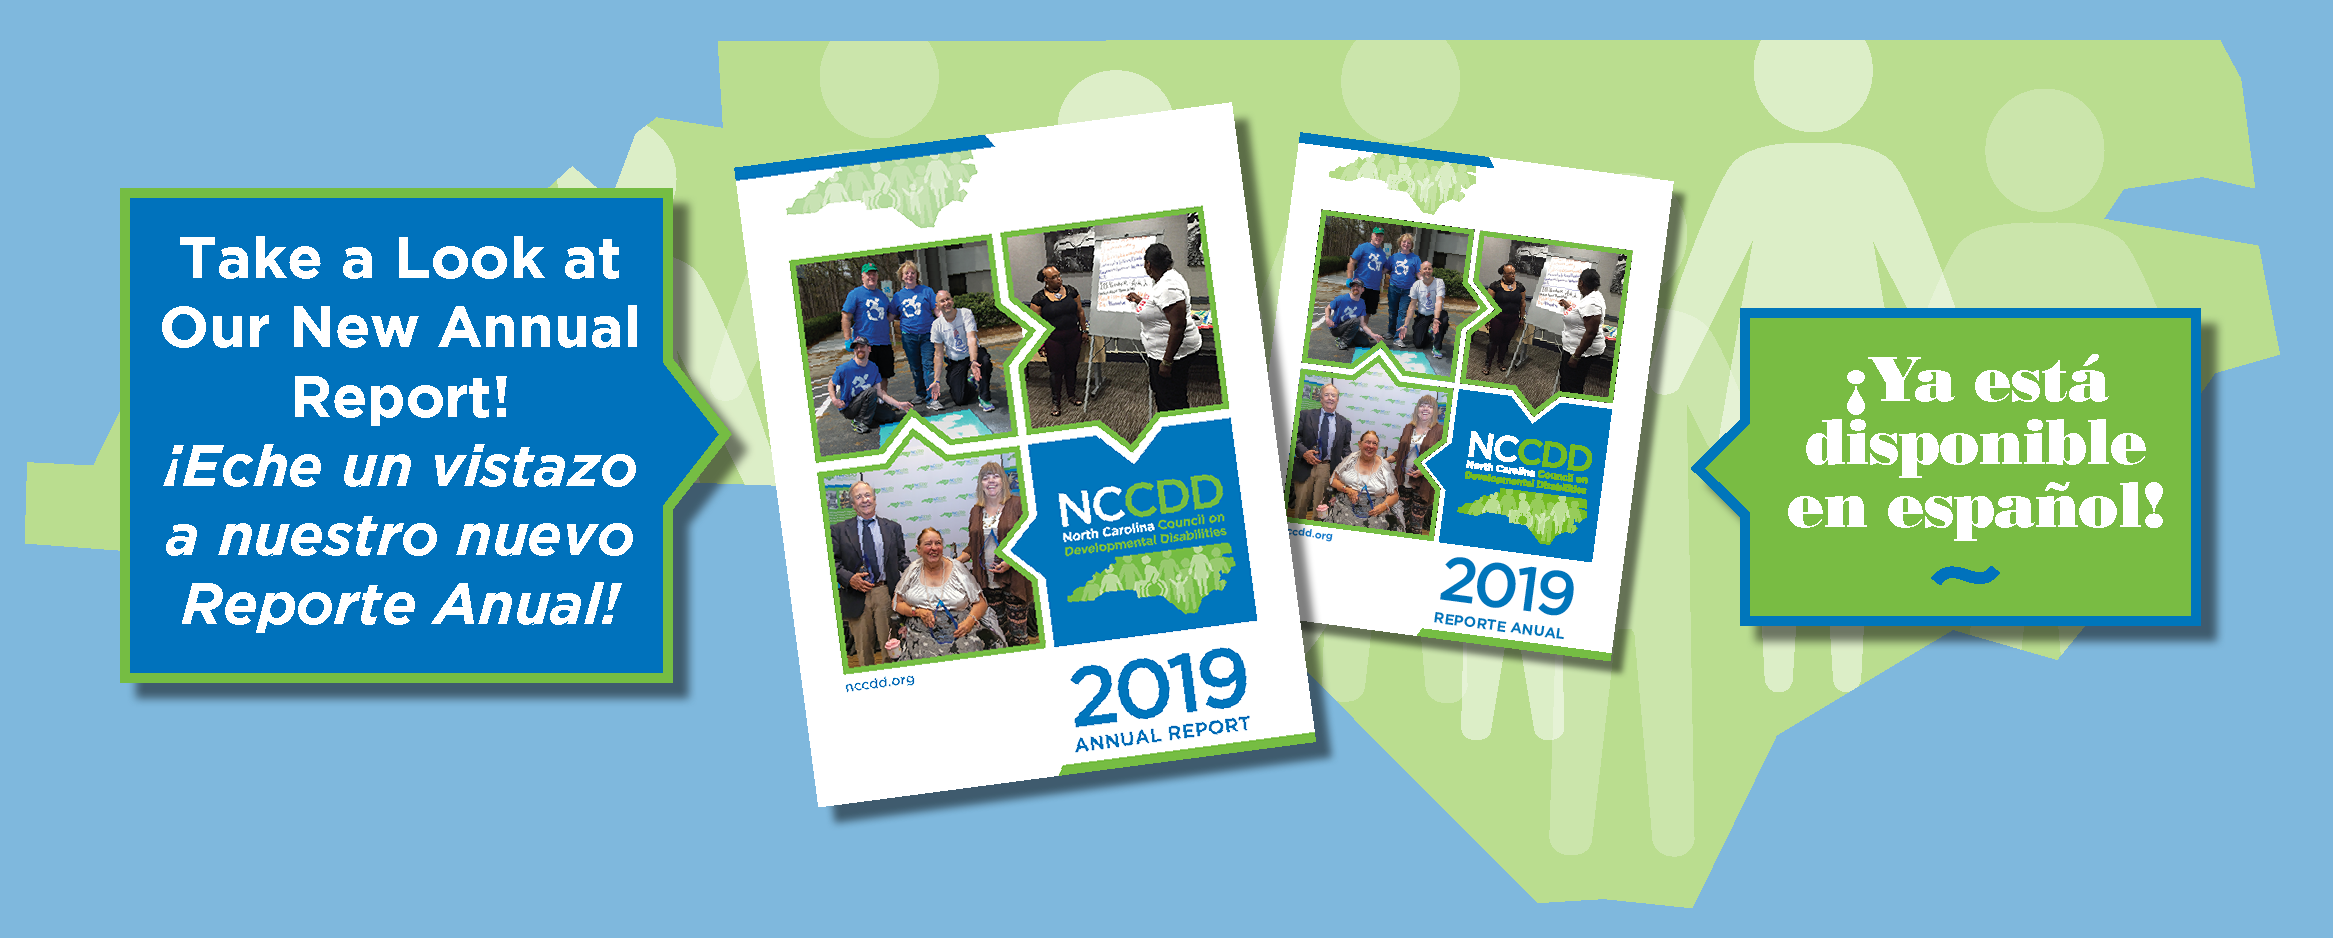 Take a look at our new annual report!